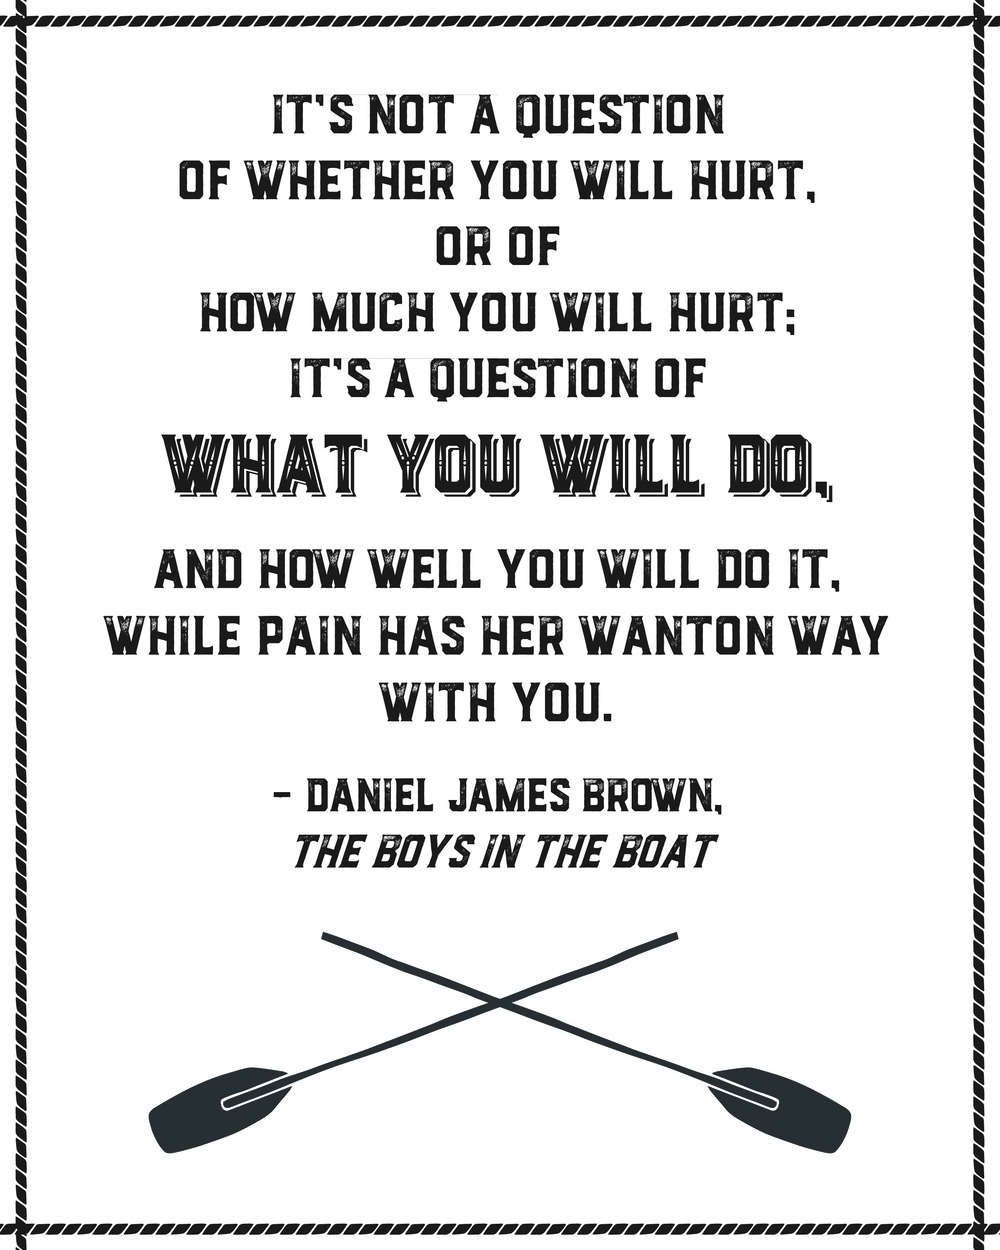 """Blessed Bookworm Designs - """"It's not a question of whether you will hurt, or of how much you will hurt; it's a question of what will you do, and how well you will do it, while pain has her wanton way with you."""" - Daniel James Brown, The Boys in the Boat Free Printable Poster"""